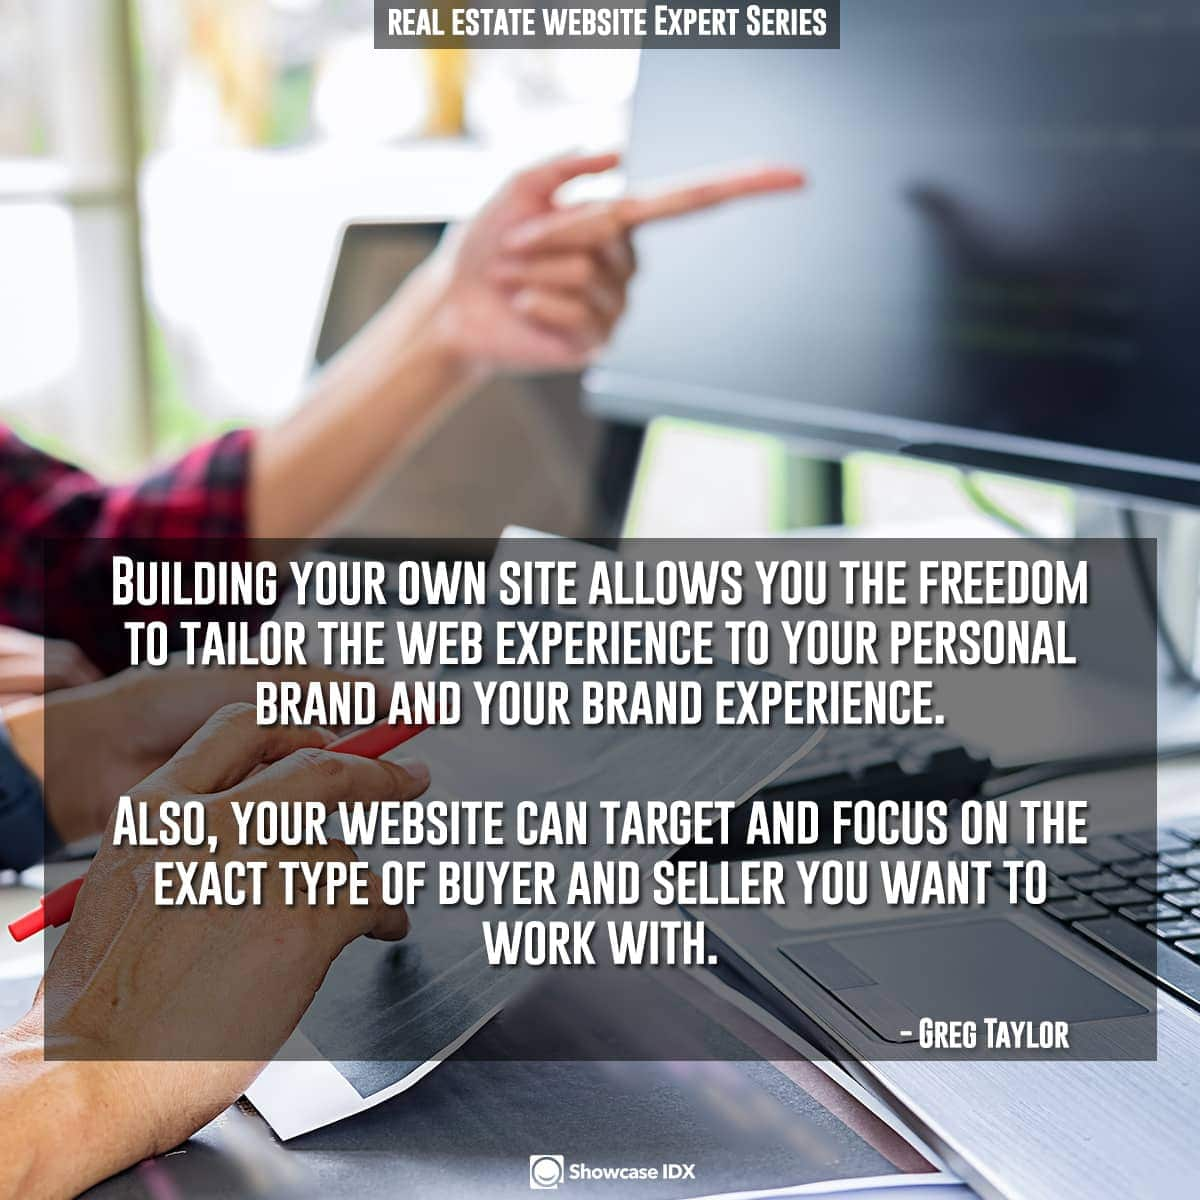 Building your own site allows you the freedom to tailor the web experience to your personal brand and your brand experience. Also, your website can target and focus on the exact type of buyer and seller you want to work with.